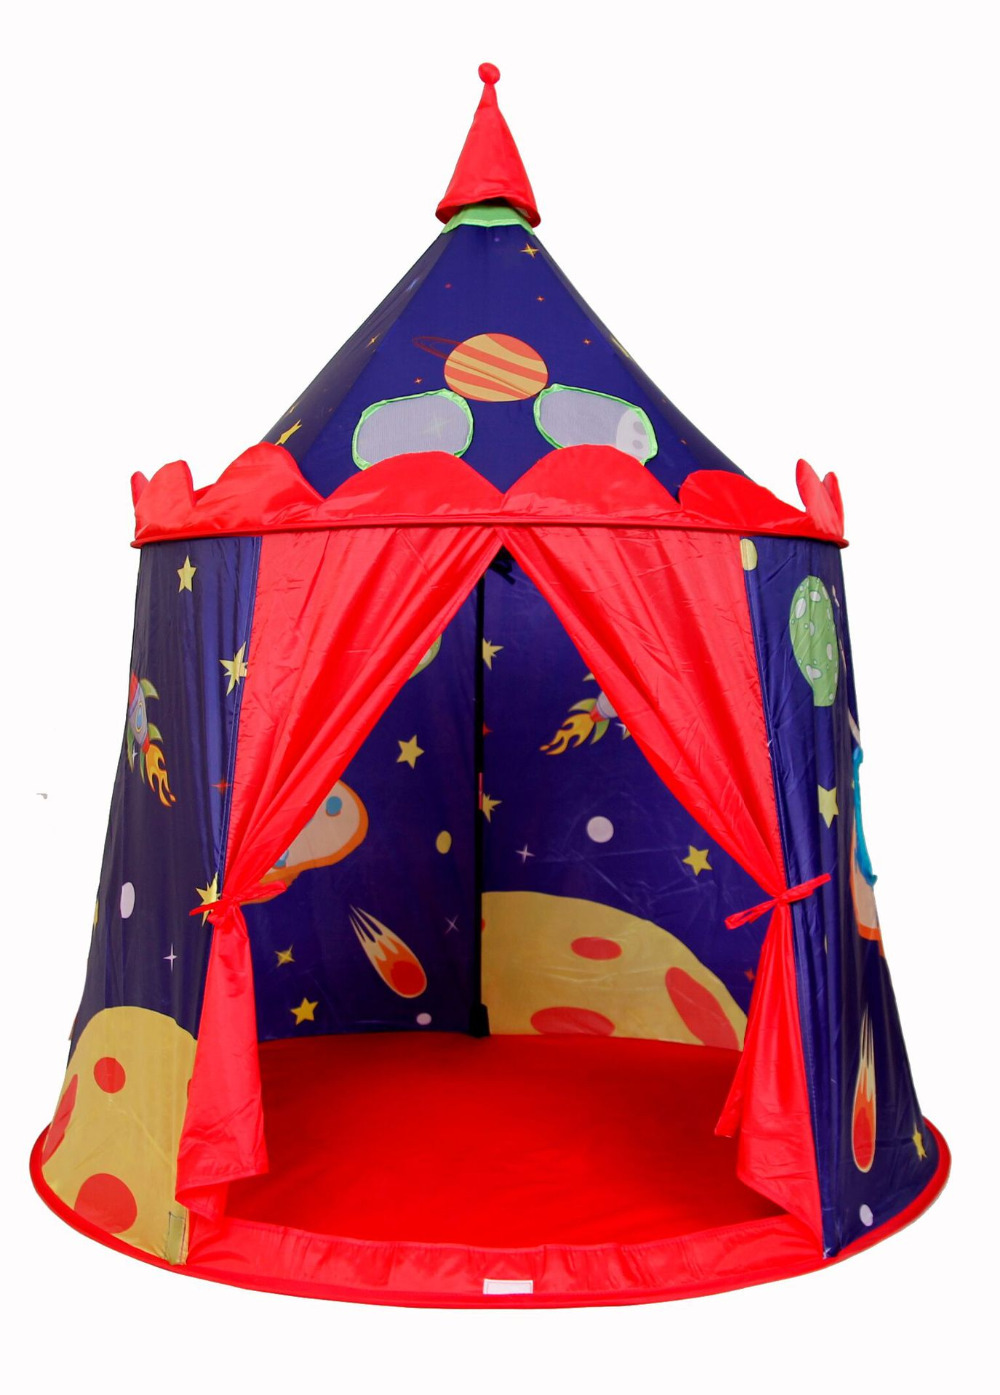 Creative New Design Universe Castle Children Kids Tent Space Castle Game Play House Tents Without Balls Safe Play Tents kids gift quality mushroom child tent 50 ocean balls kids game house 5 5 cm wave balls indoor